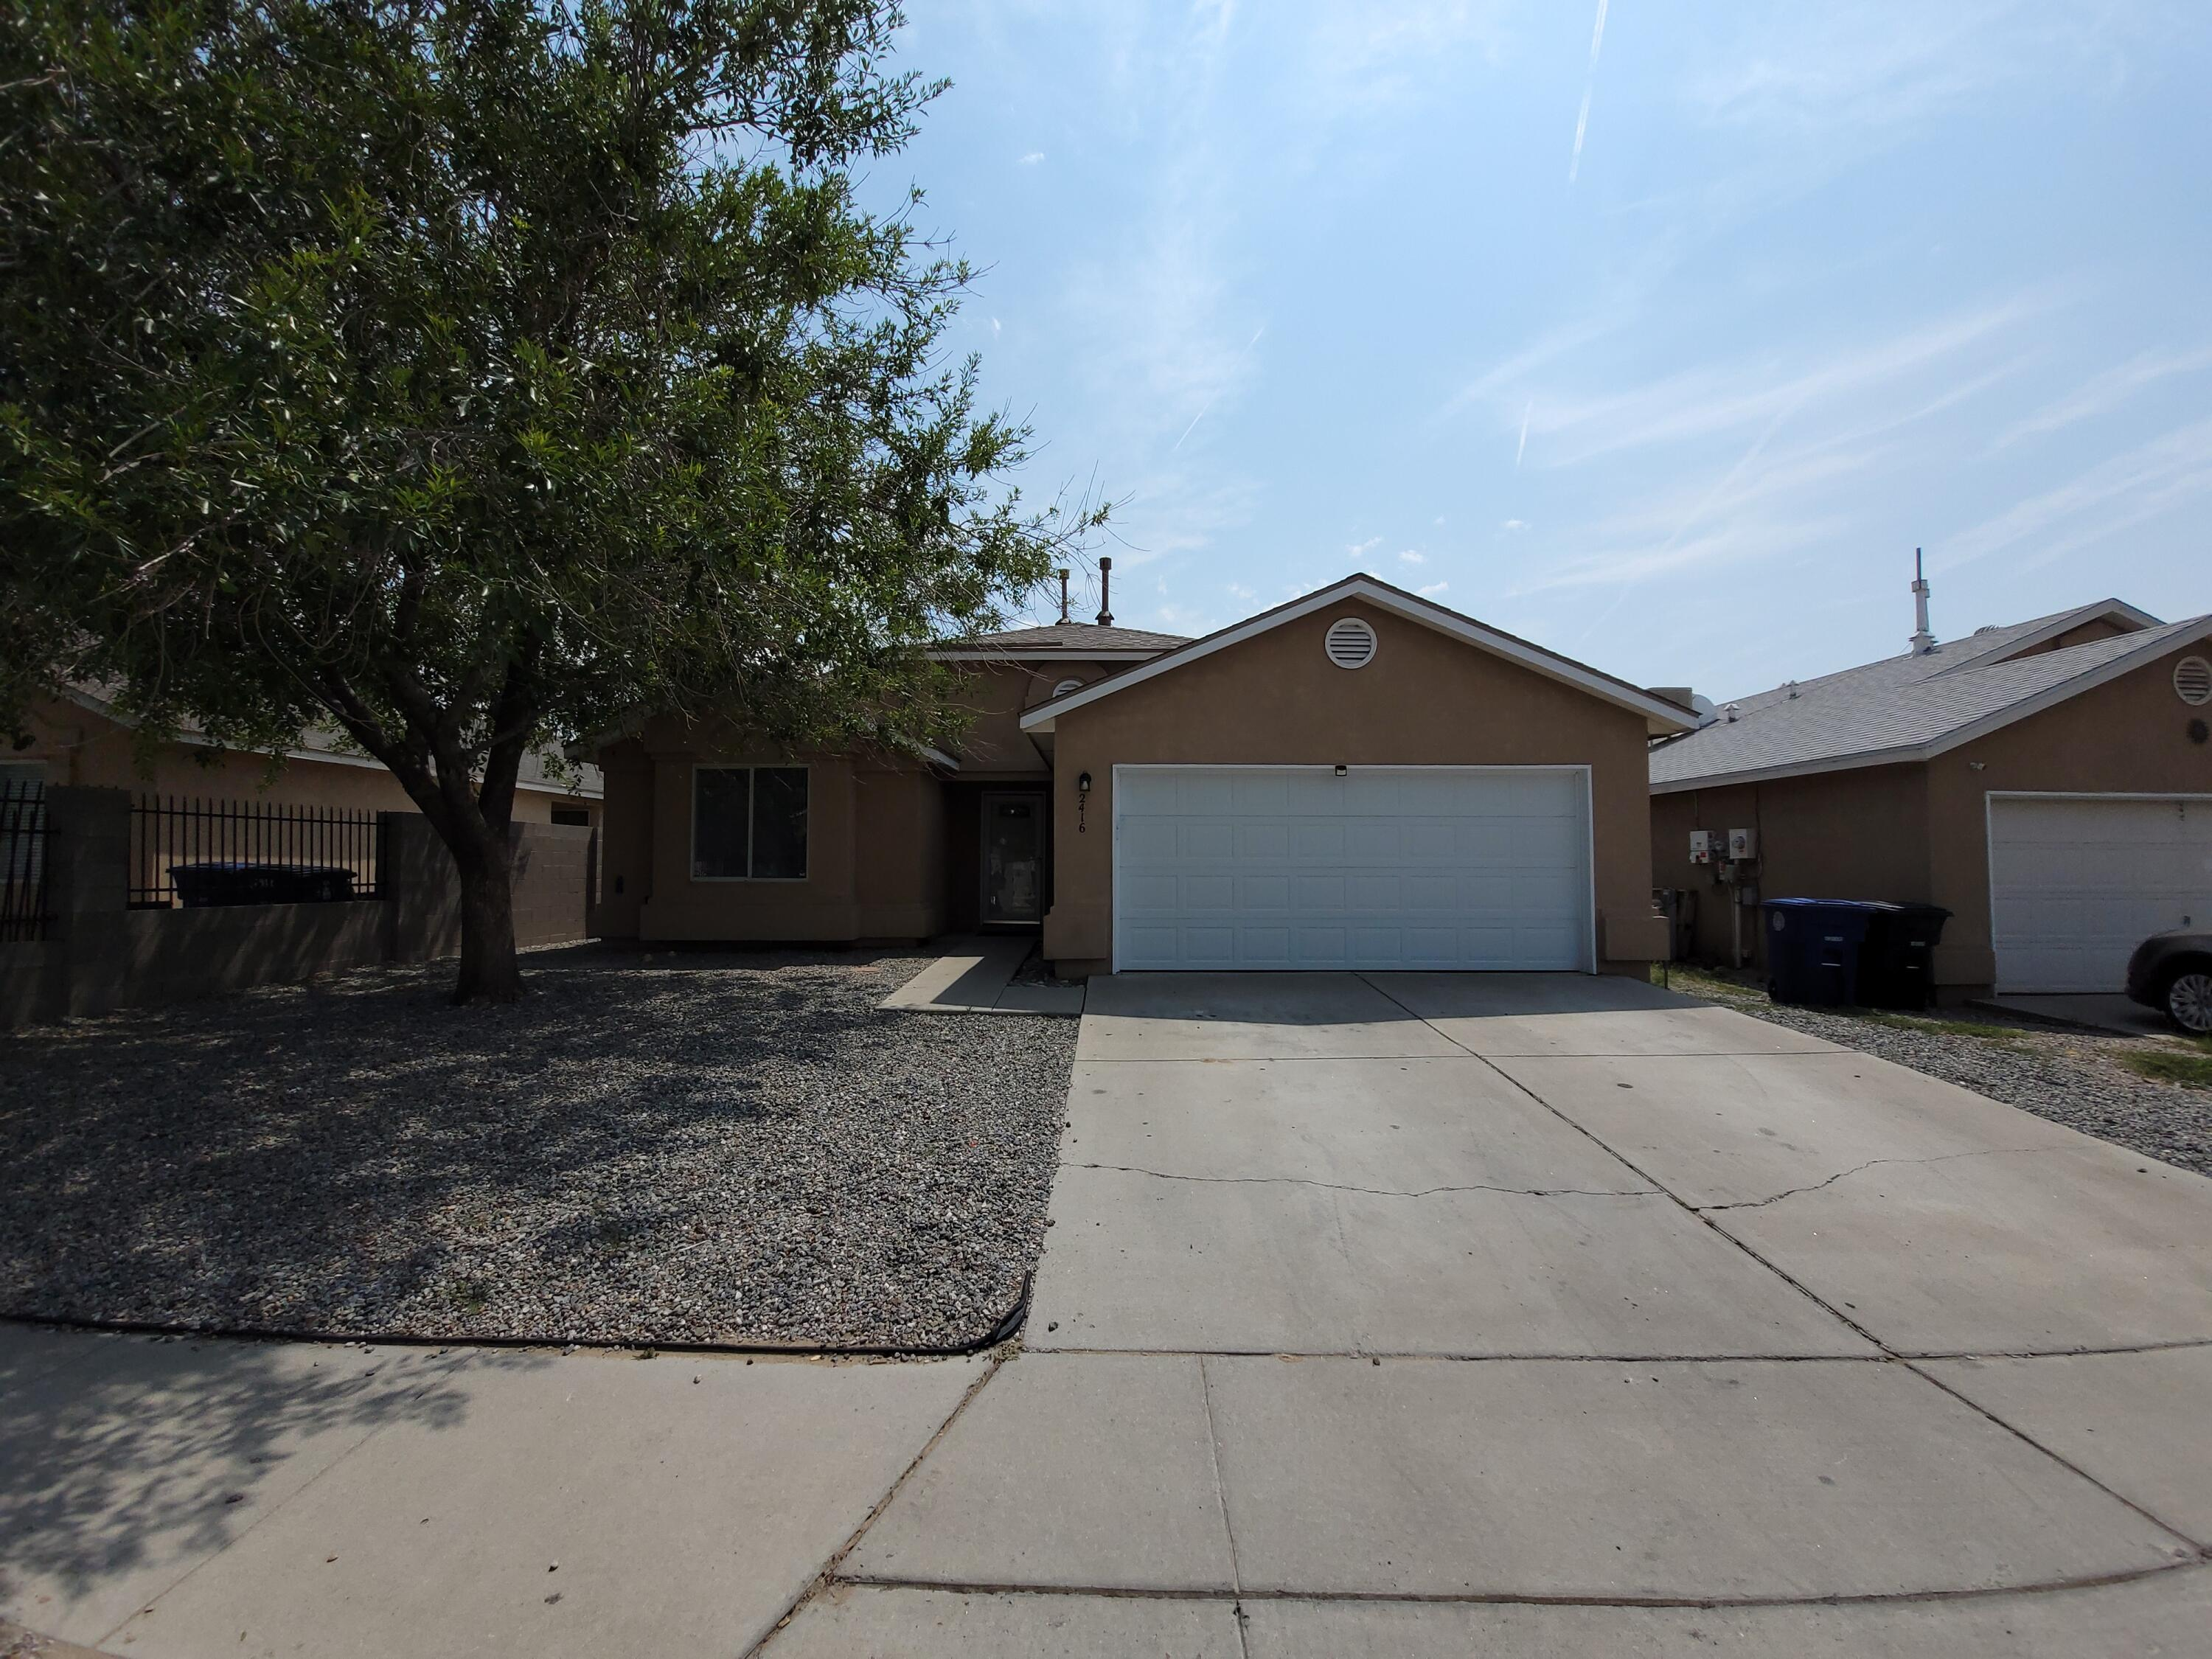 This home is back on the market buyers financing fell through! The apprisal, Termite/Dry rot and inspections are all complete. This Home is in a great Neighborhood, It is remodeled with a new high end roof cabinets, tile and carpet. This great house has 4 bedrooms,2 full bath rooms and Vaulted ceilings. It has a very open kitchen with granite countertops and upgraded bartop with view of entertaining room. A nice walled private back yard to bar b que with the family and enjoy the eastern views. You will enjoy this open floor plan.